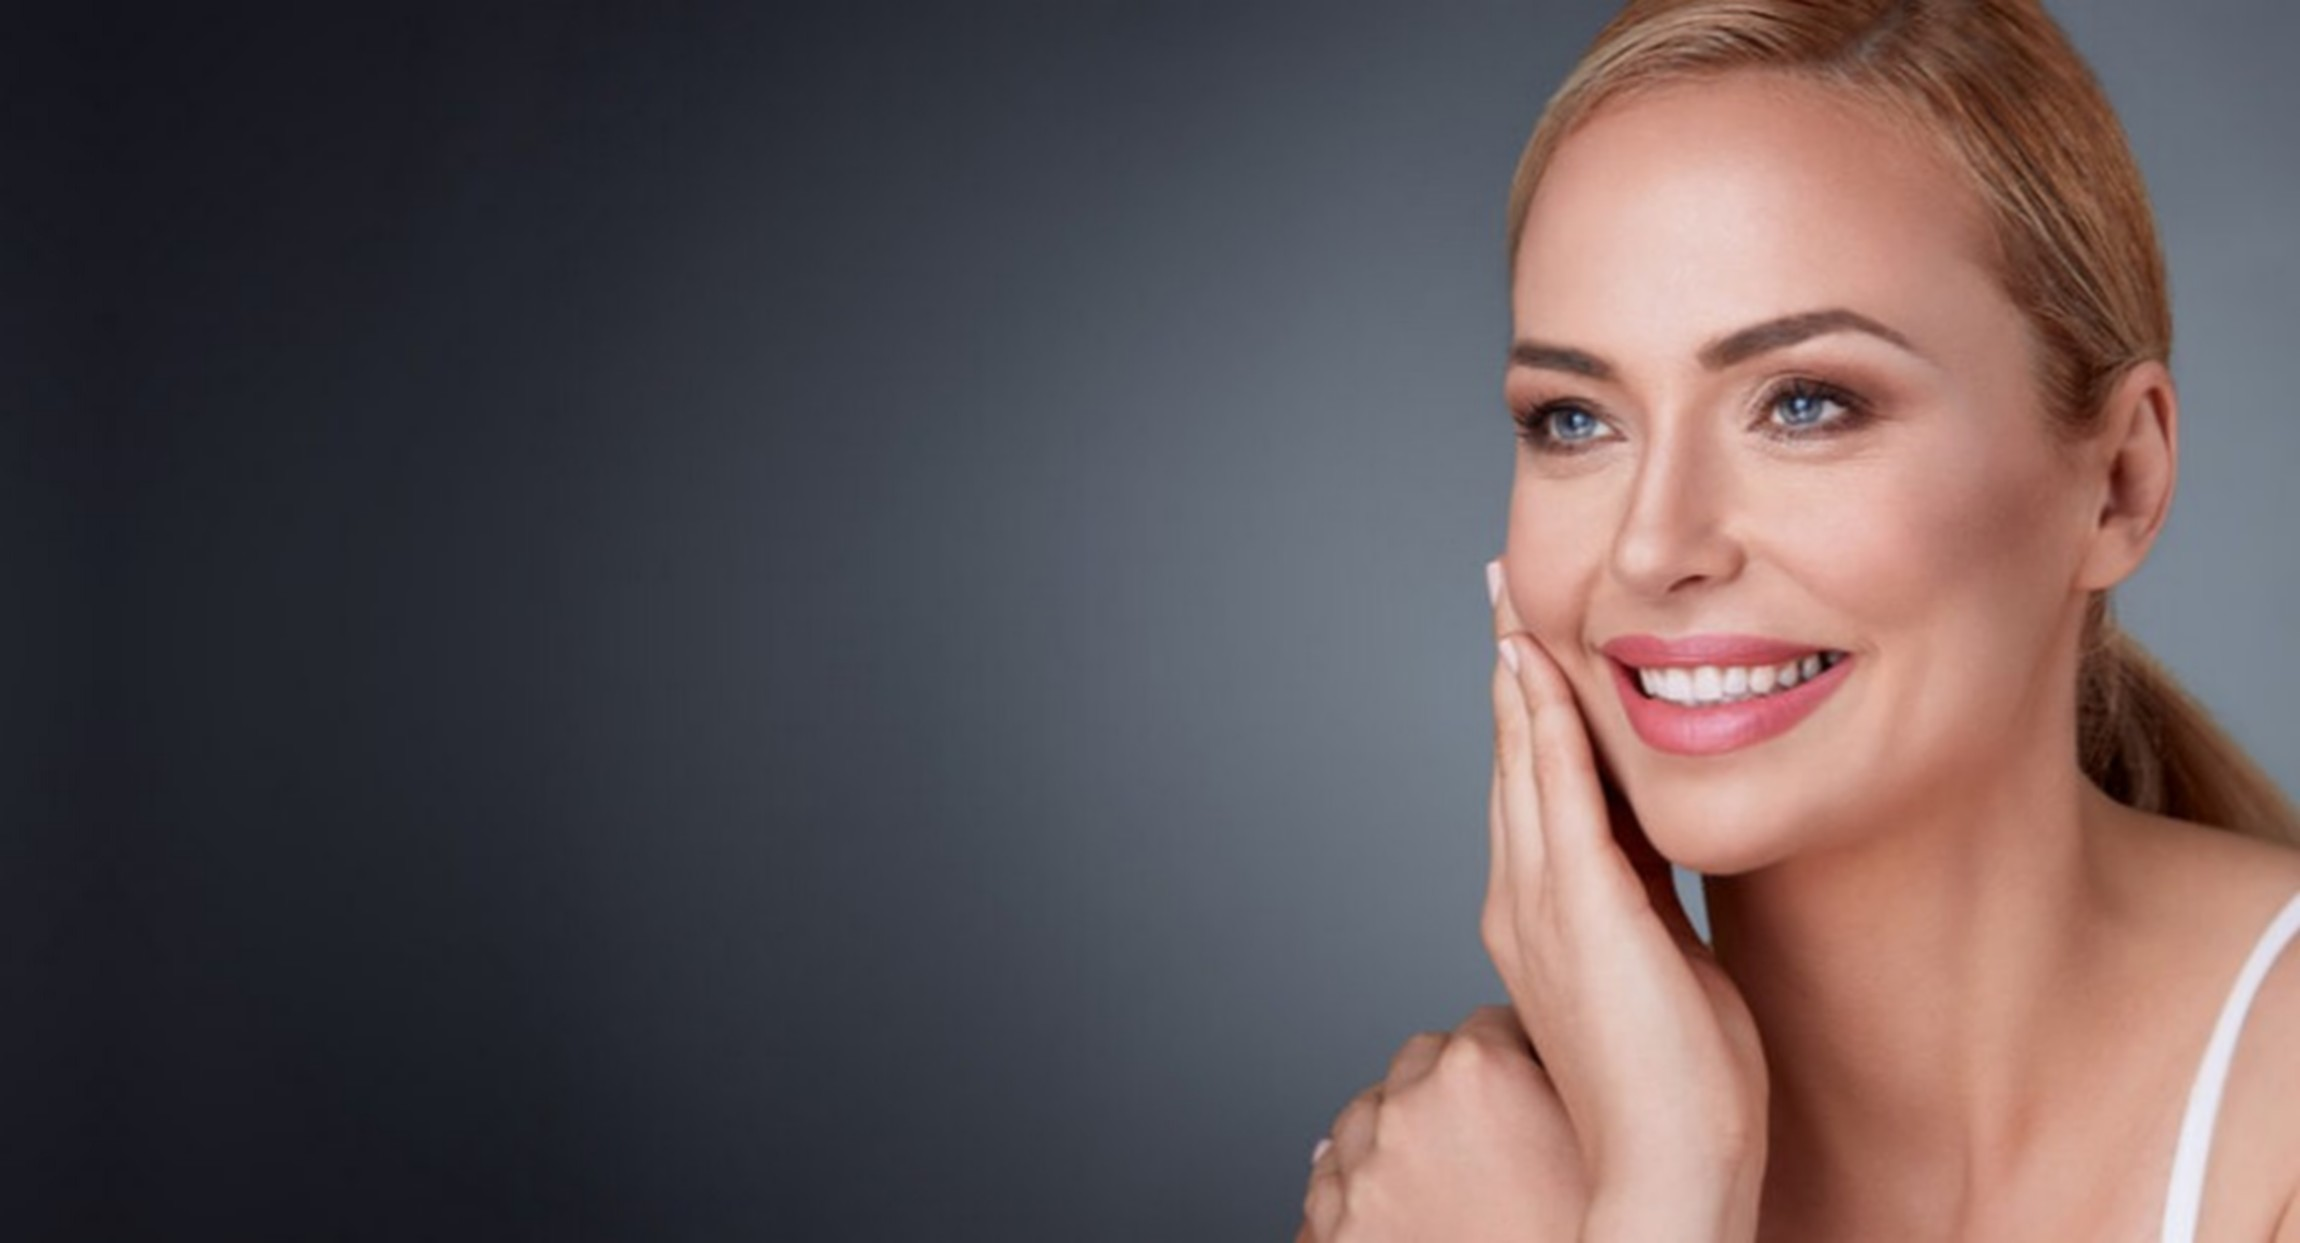 <p>We are Offering your Skin <br> A Revolutionary Anti-Aging <br> from The Nugget of Youthness.</p>